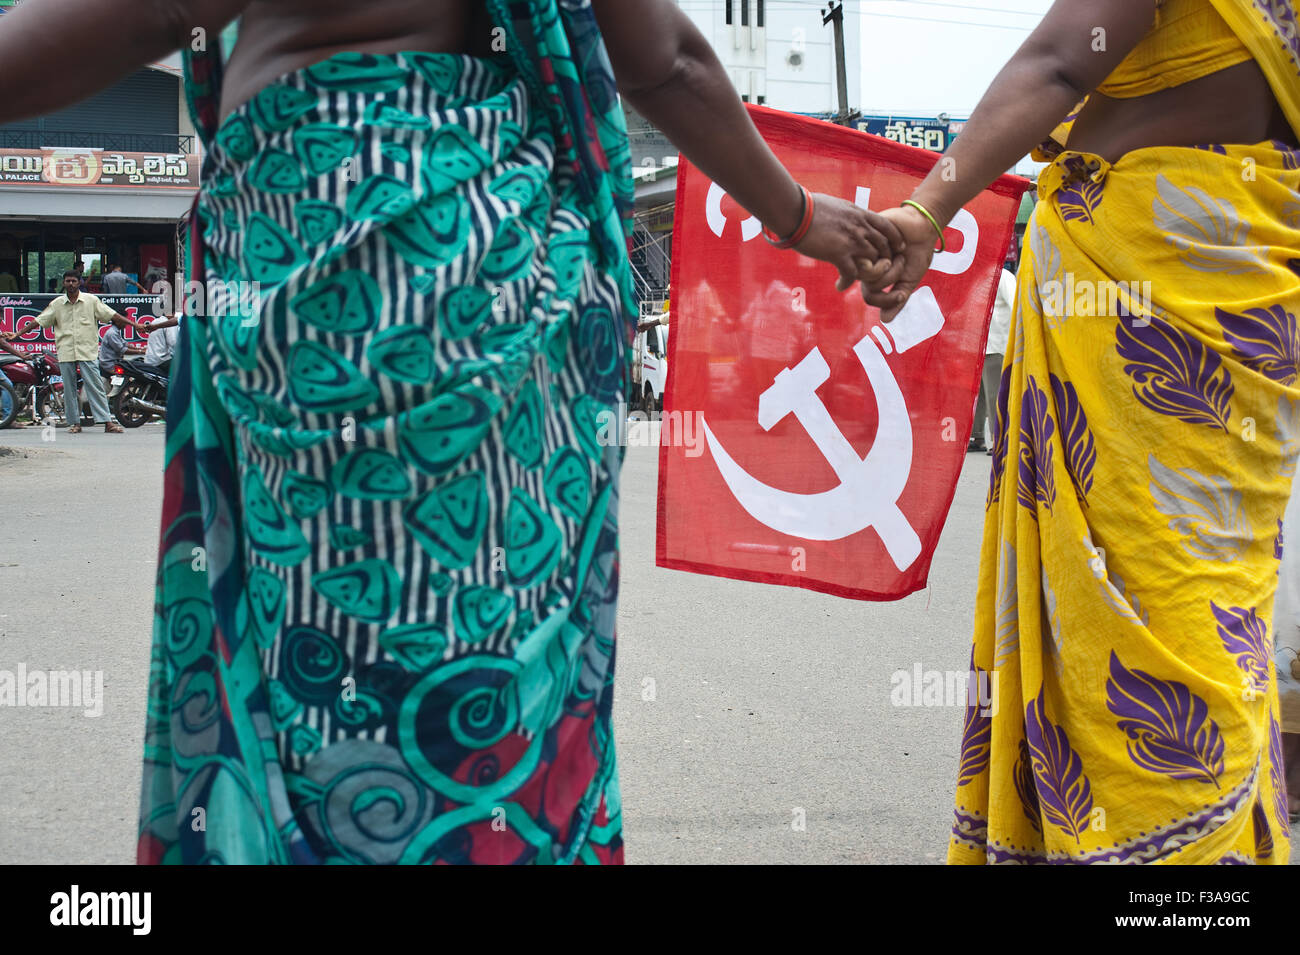 Municipal workers are on strike. One woman is holding a flag with the communist logo ( India) - Stock Image